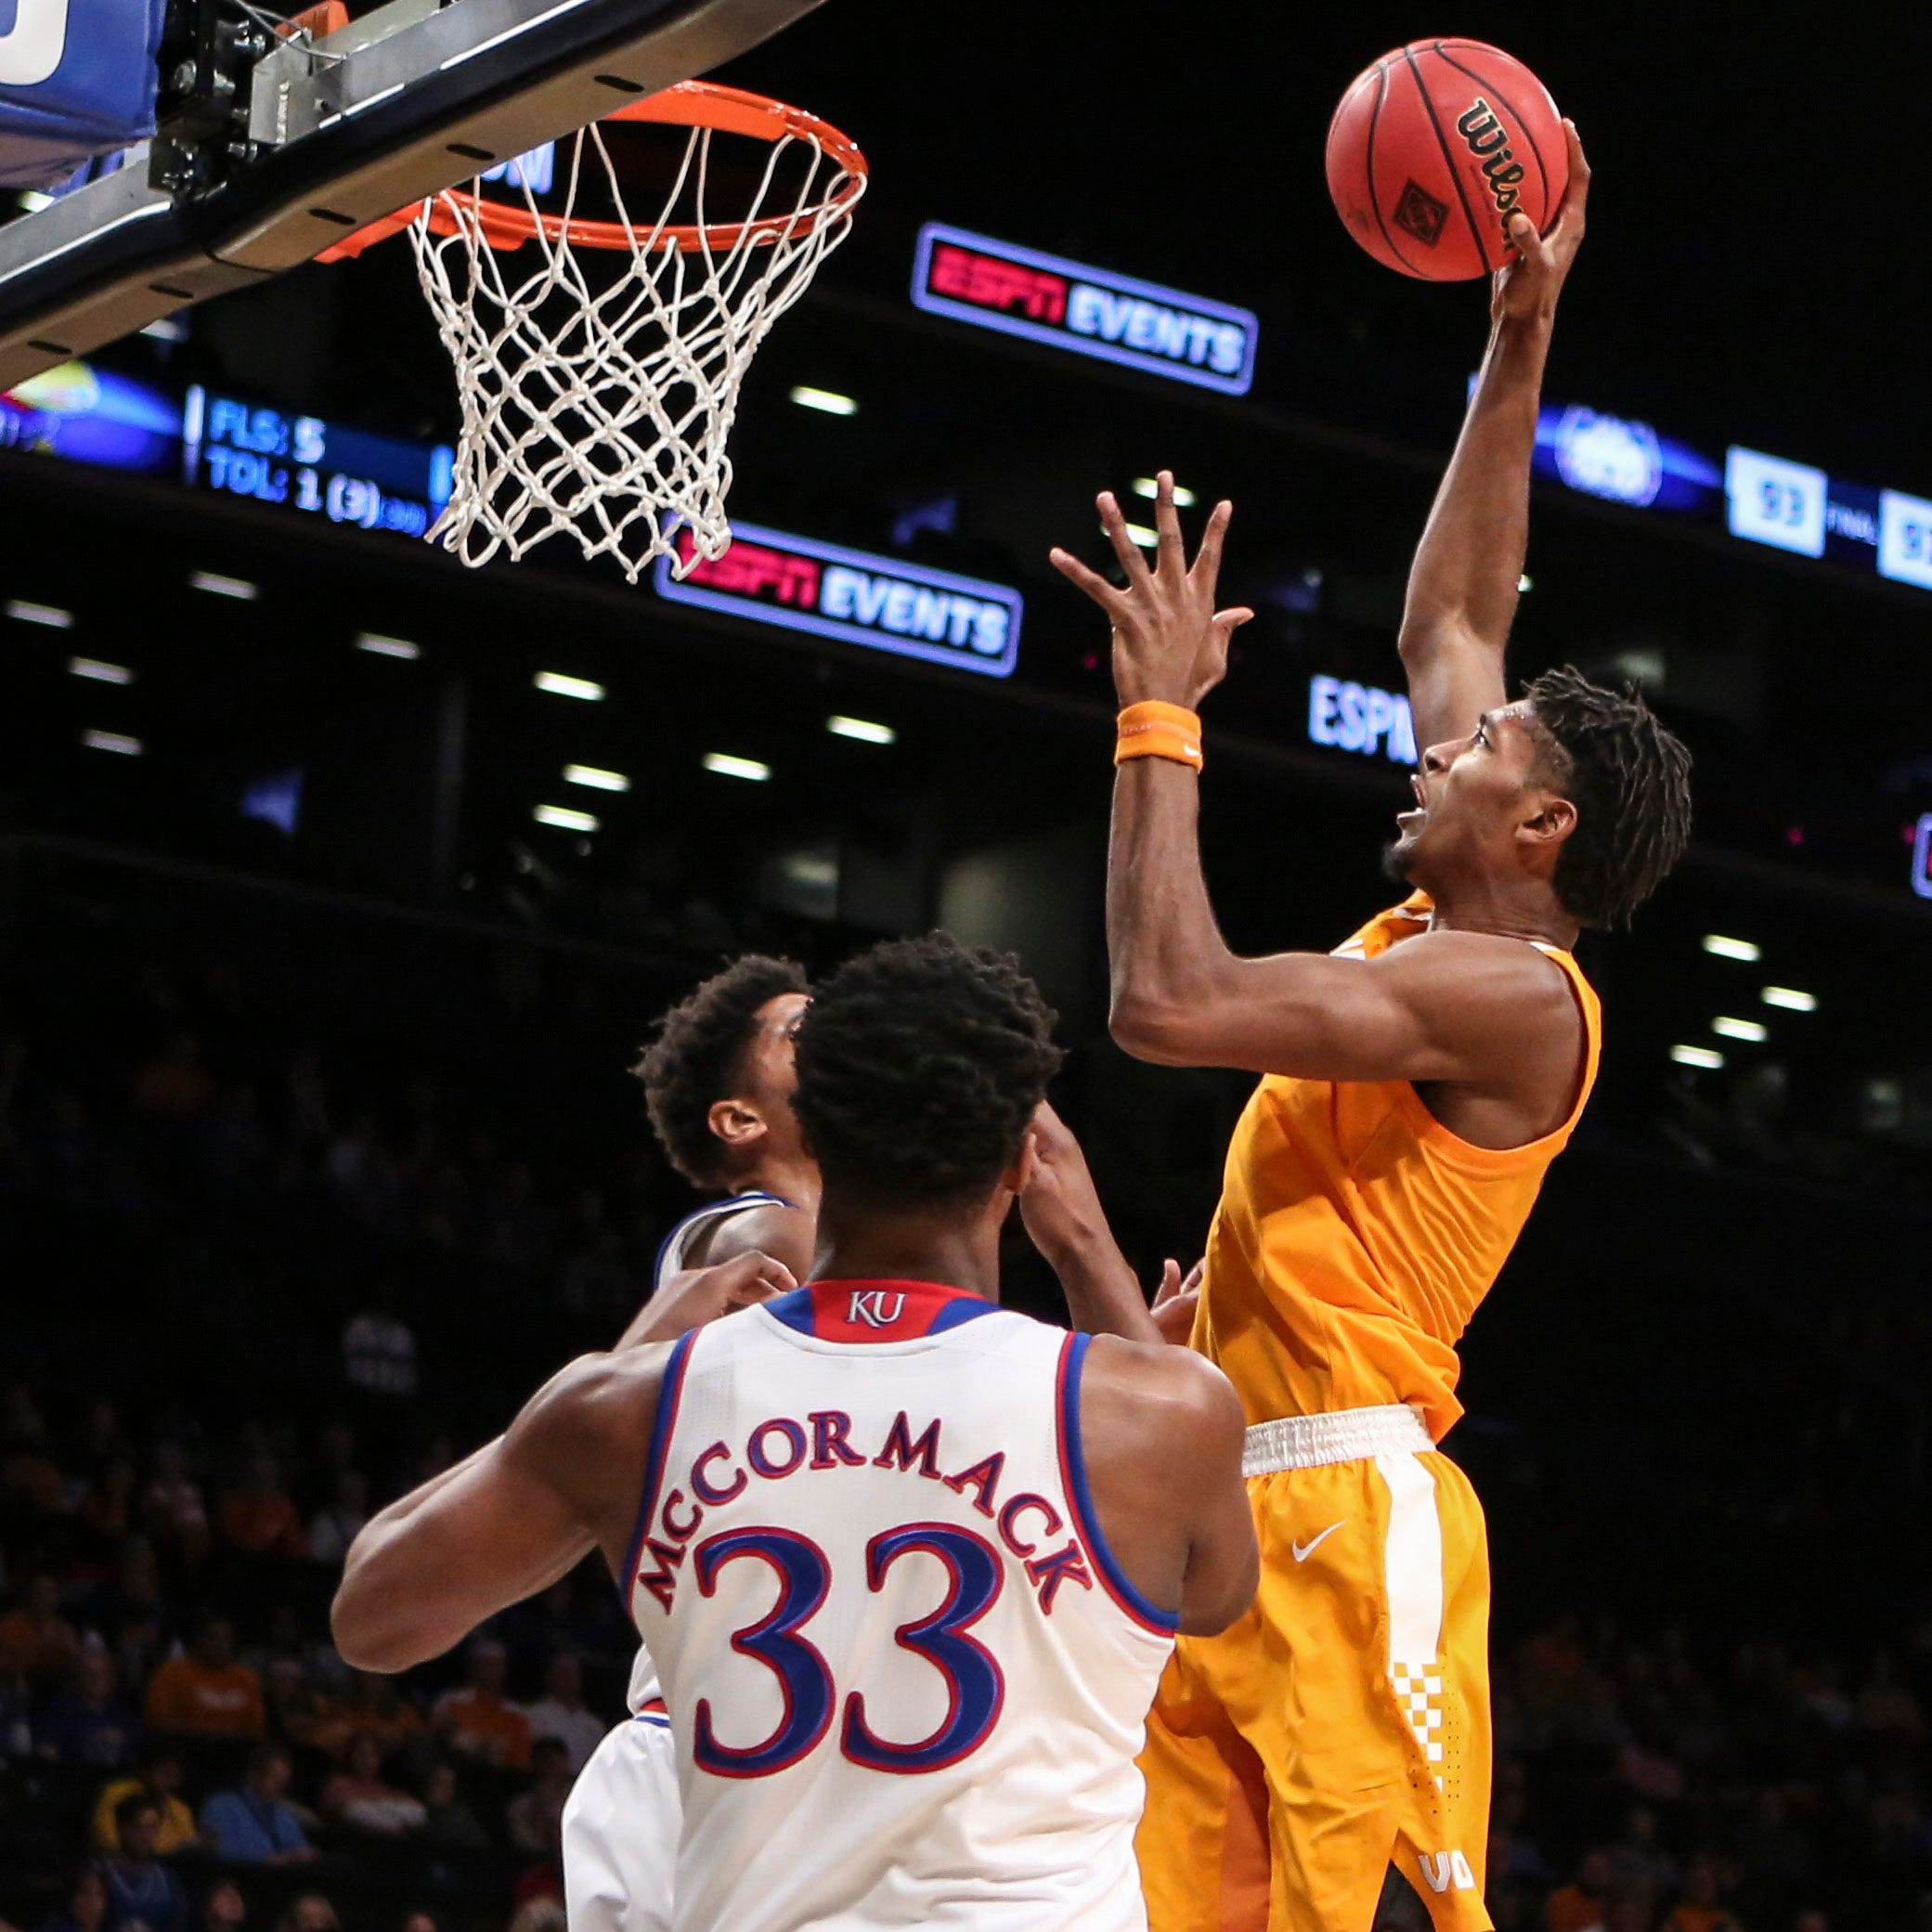 UT Vols basketball: Kansas lessons could help Tennessee against Gonzaga